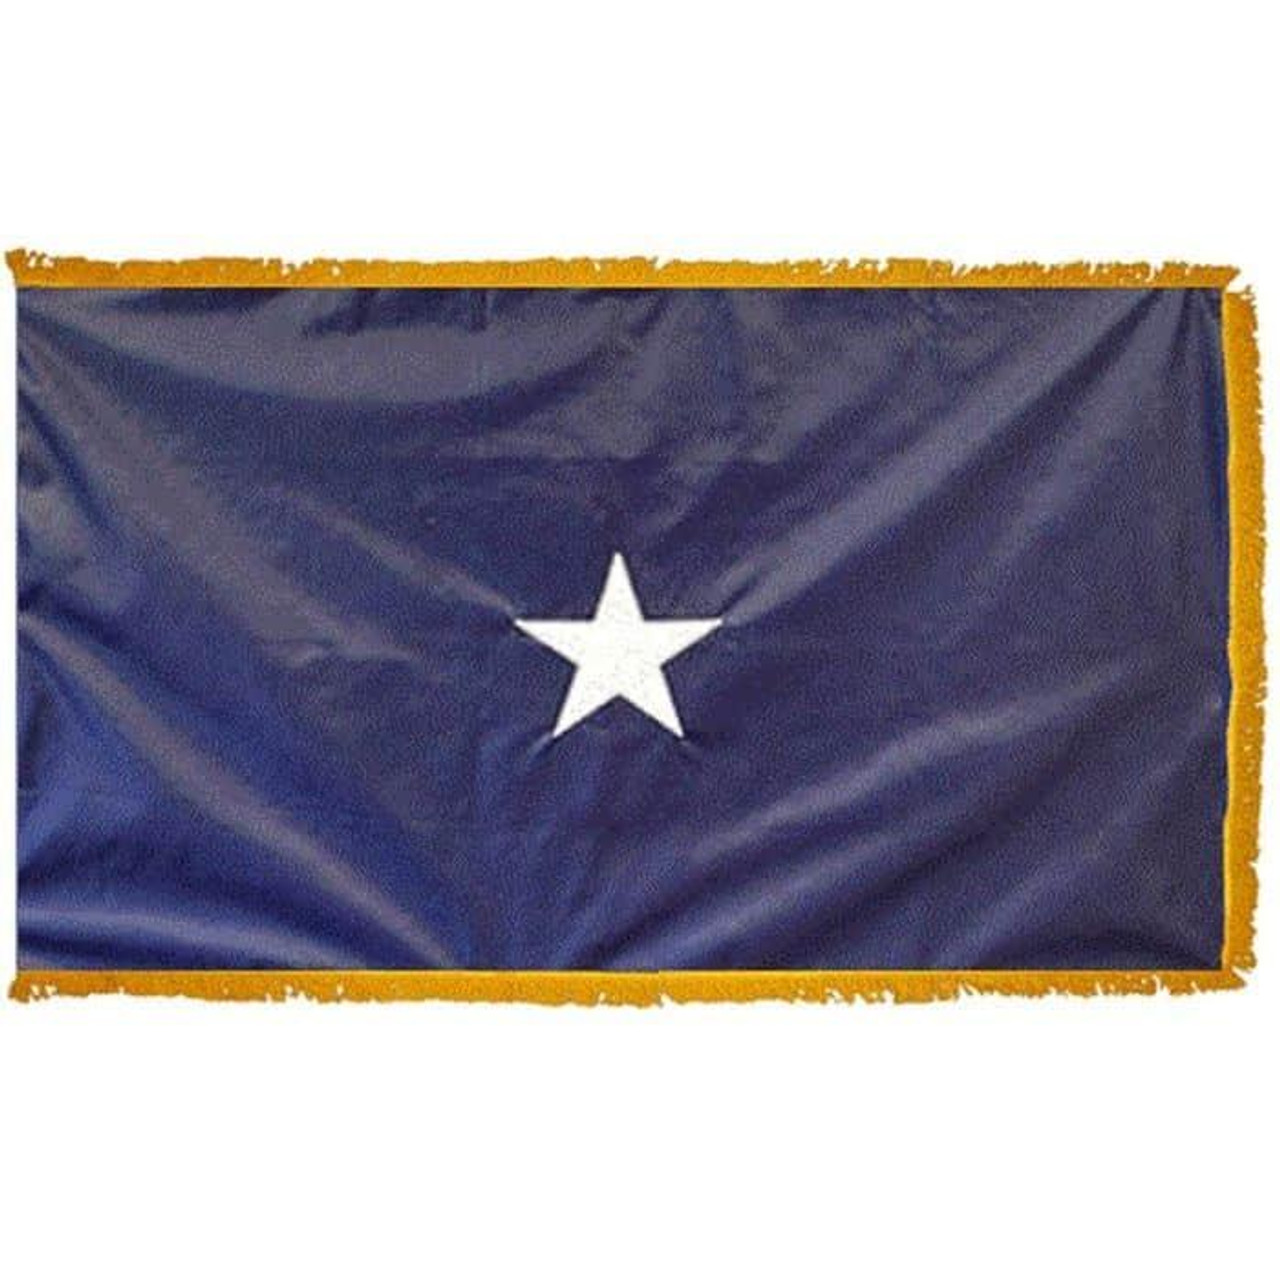 Navy Seagoing 1 Star Officer Indoor Flag